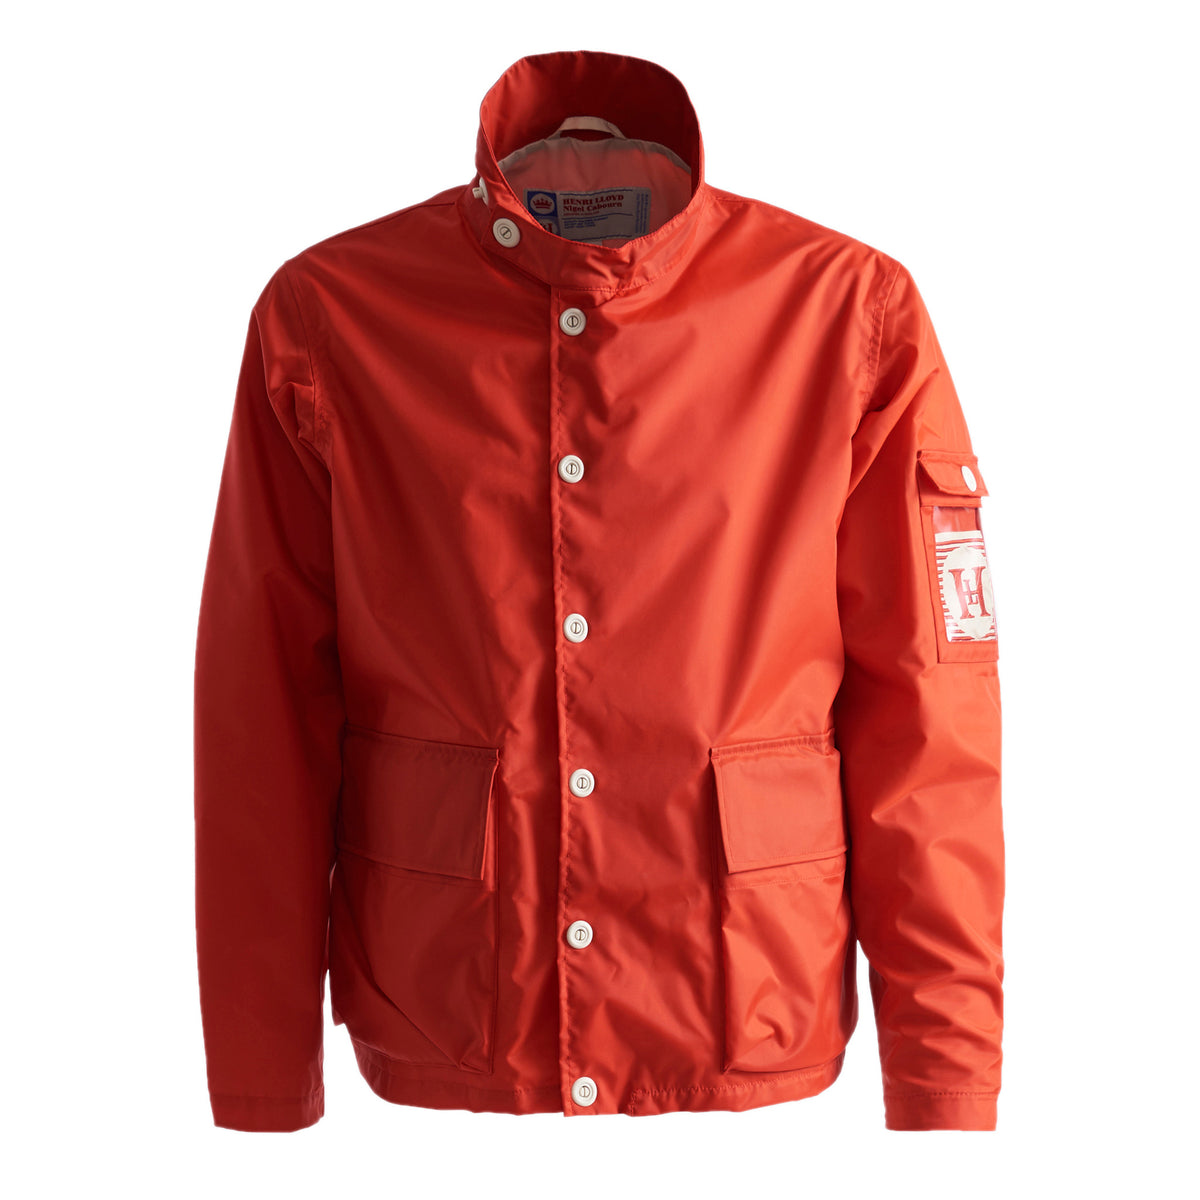 Henri Lloyd X Nigel Cabourn Waterproof Deck Jacket Old Red Front